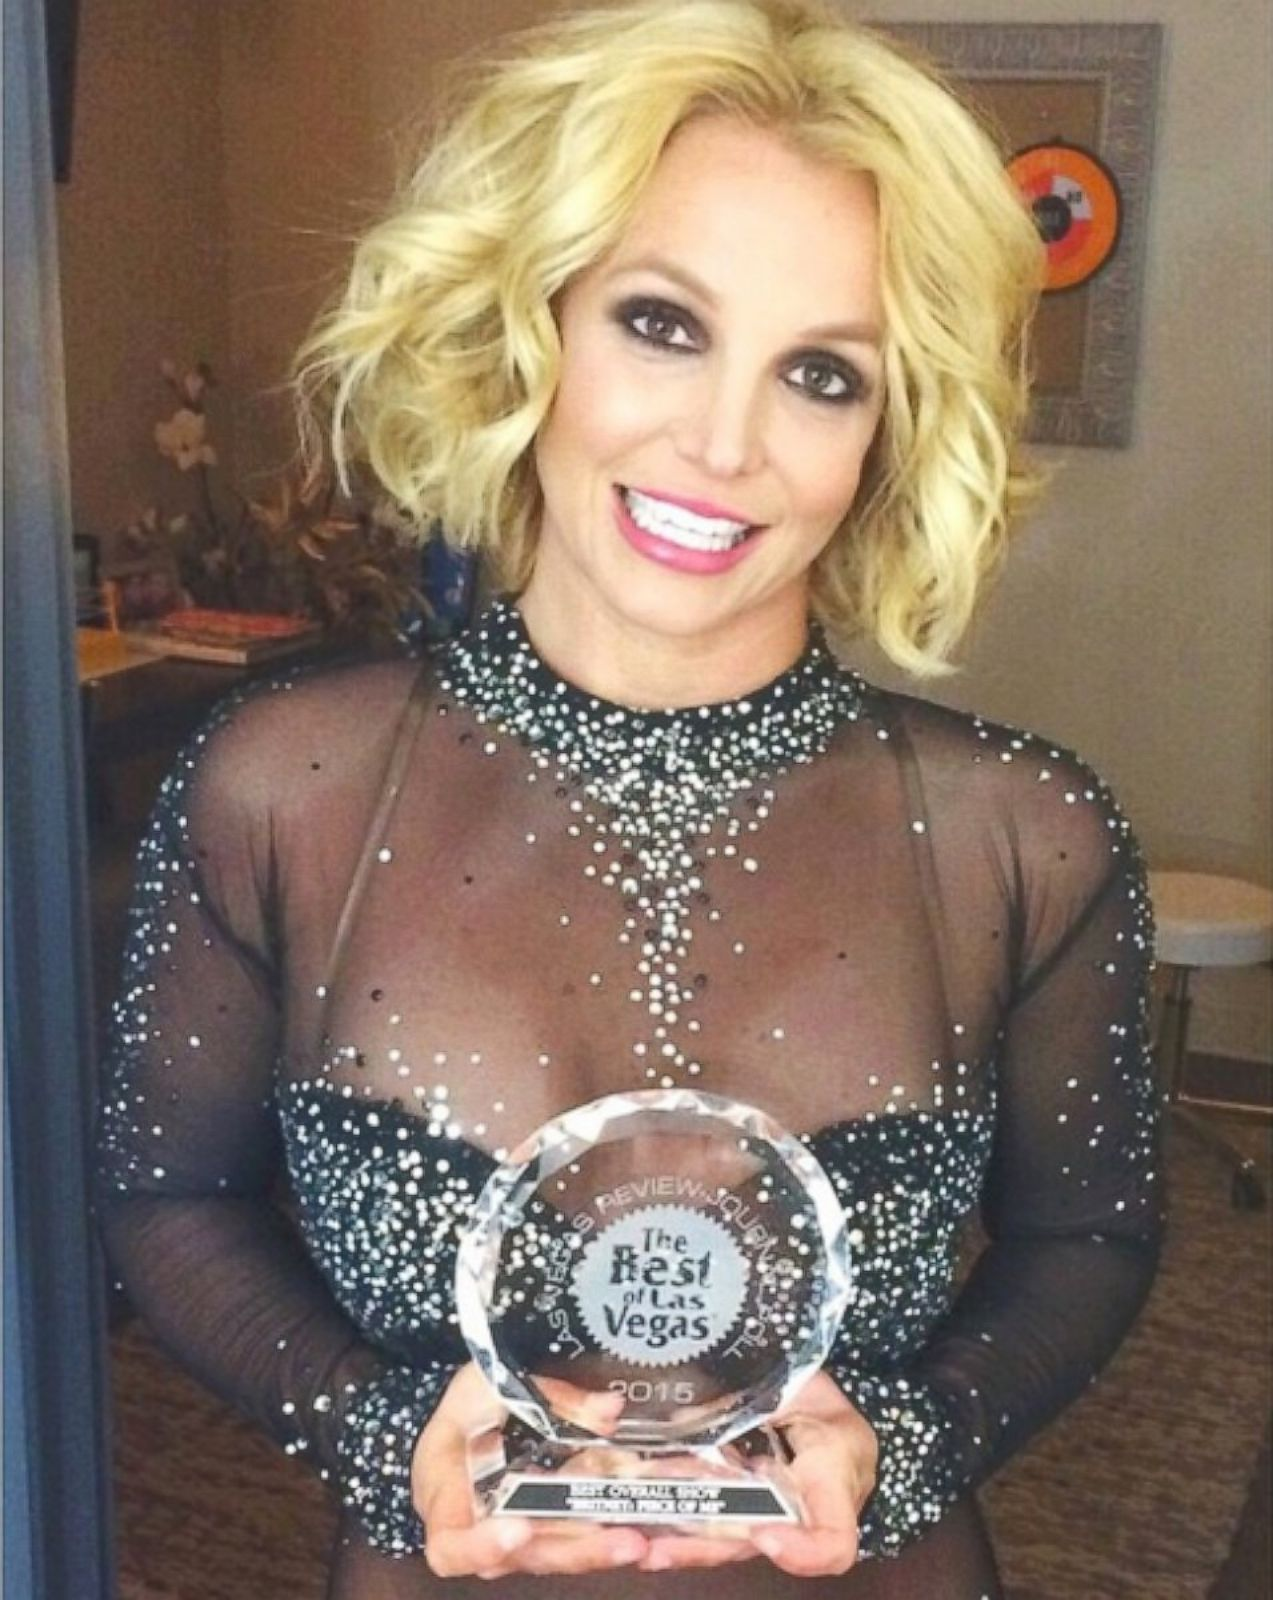 Britney Spears Shows Off an Award Picture | Britney Spears ...